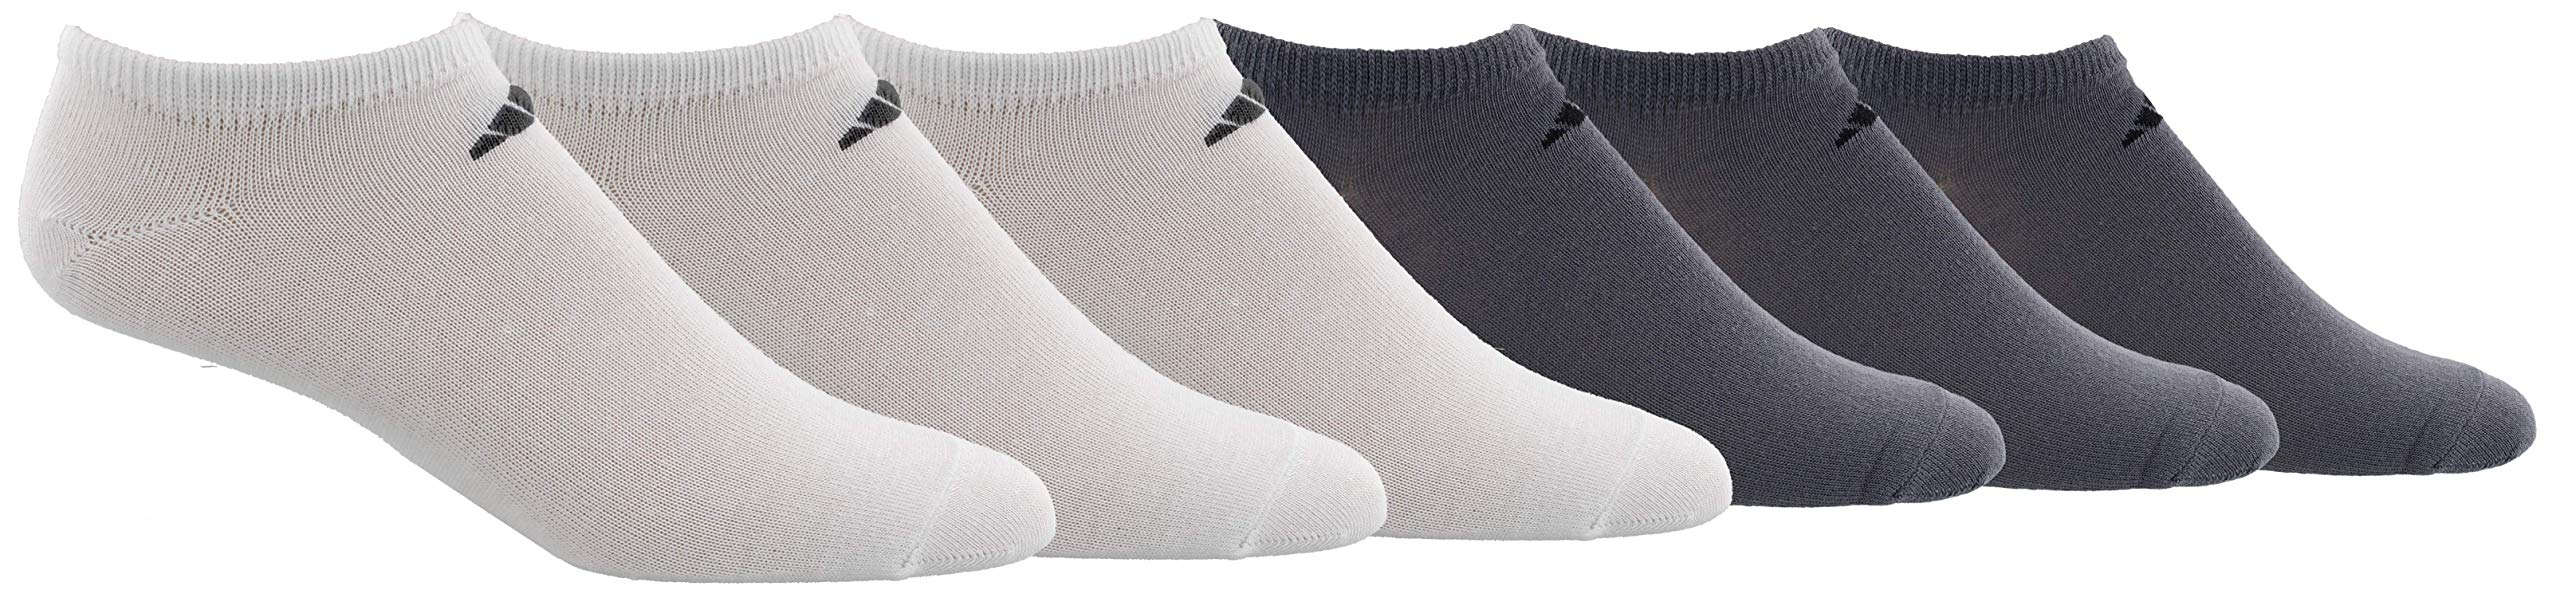 adidas Men's Superlite Low Cut Socks with arch compression (6-Pair),White/ Black Onix/ Black,Large, (Shoe Size 6-12) by adidas